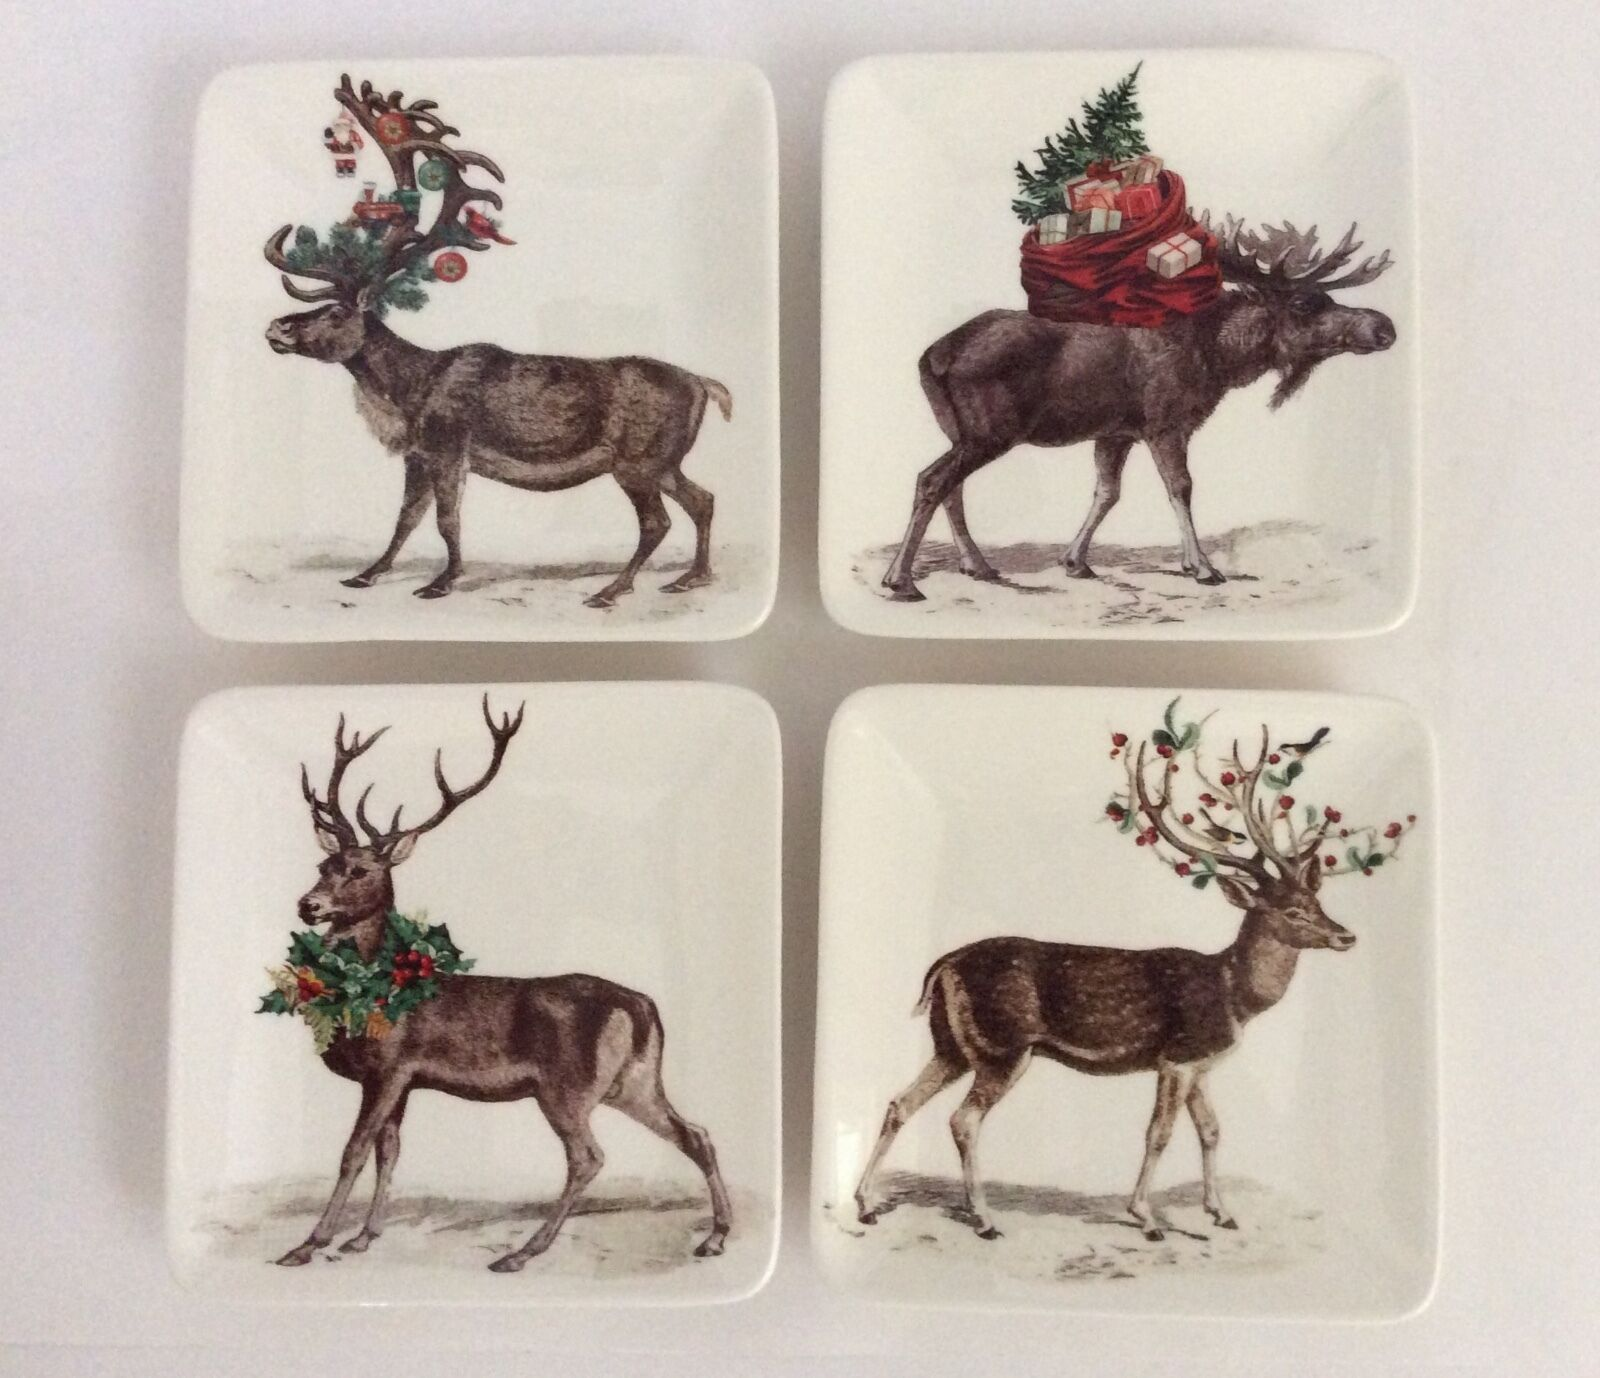 Pottery Barn Stag Deer Appetizer Plates    Set of 4  Stag w Gifts New with Tags 6ac83f